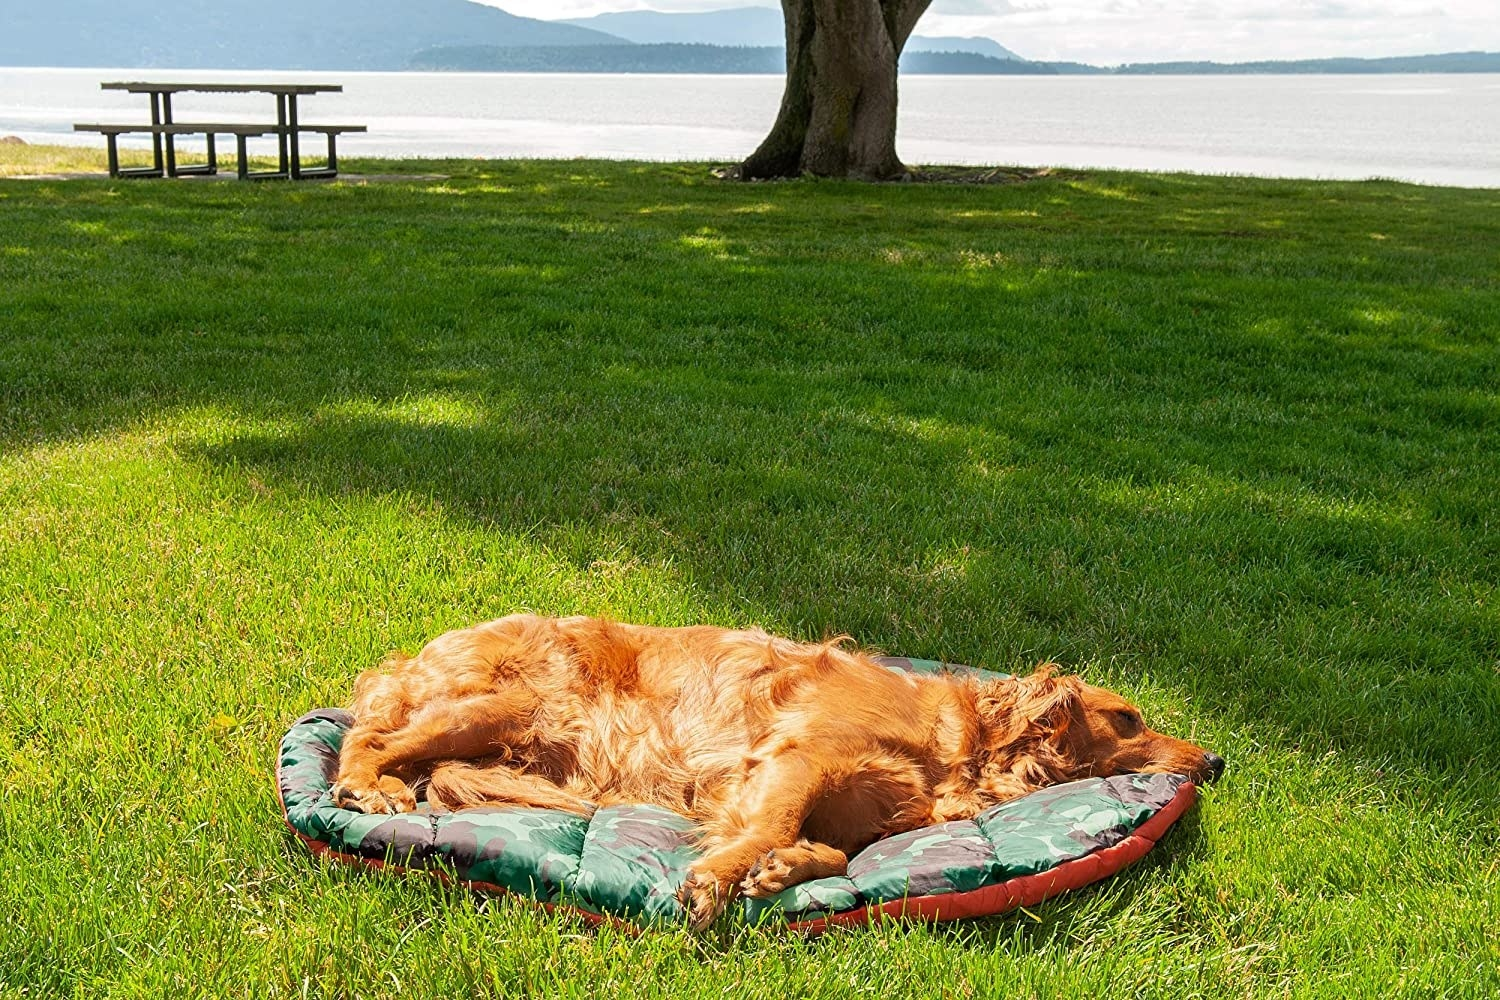 A dog on the bed, which is round and made of sleeping bag-like material